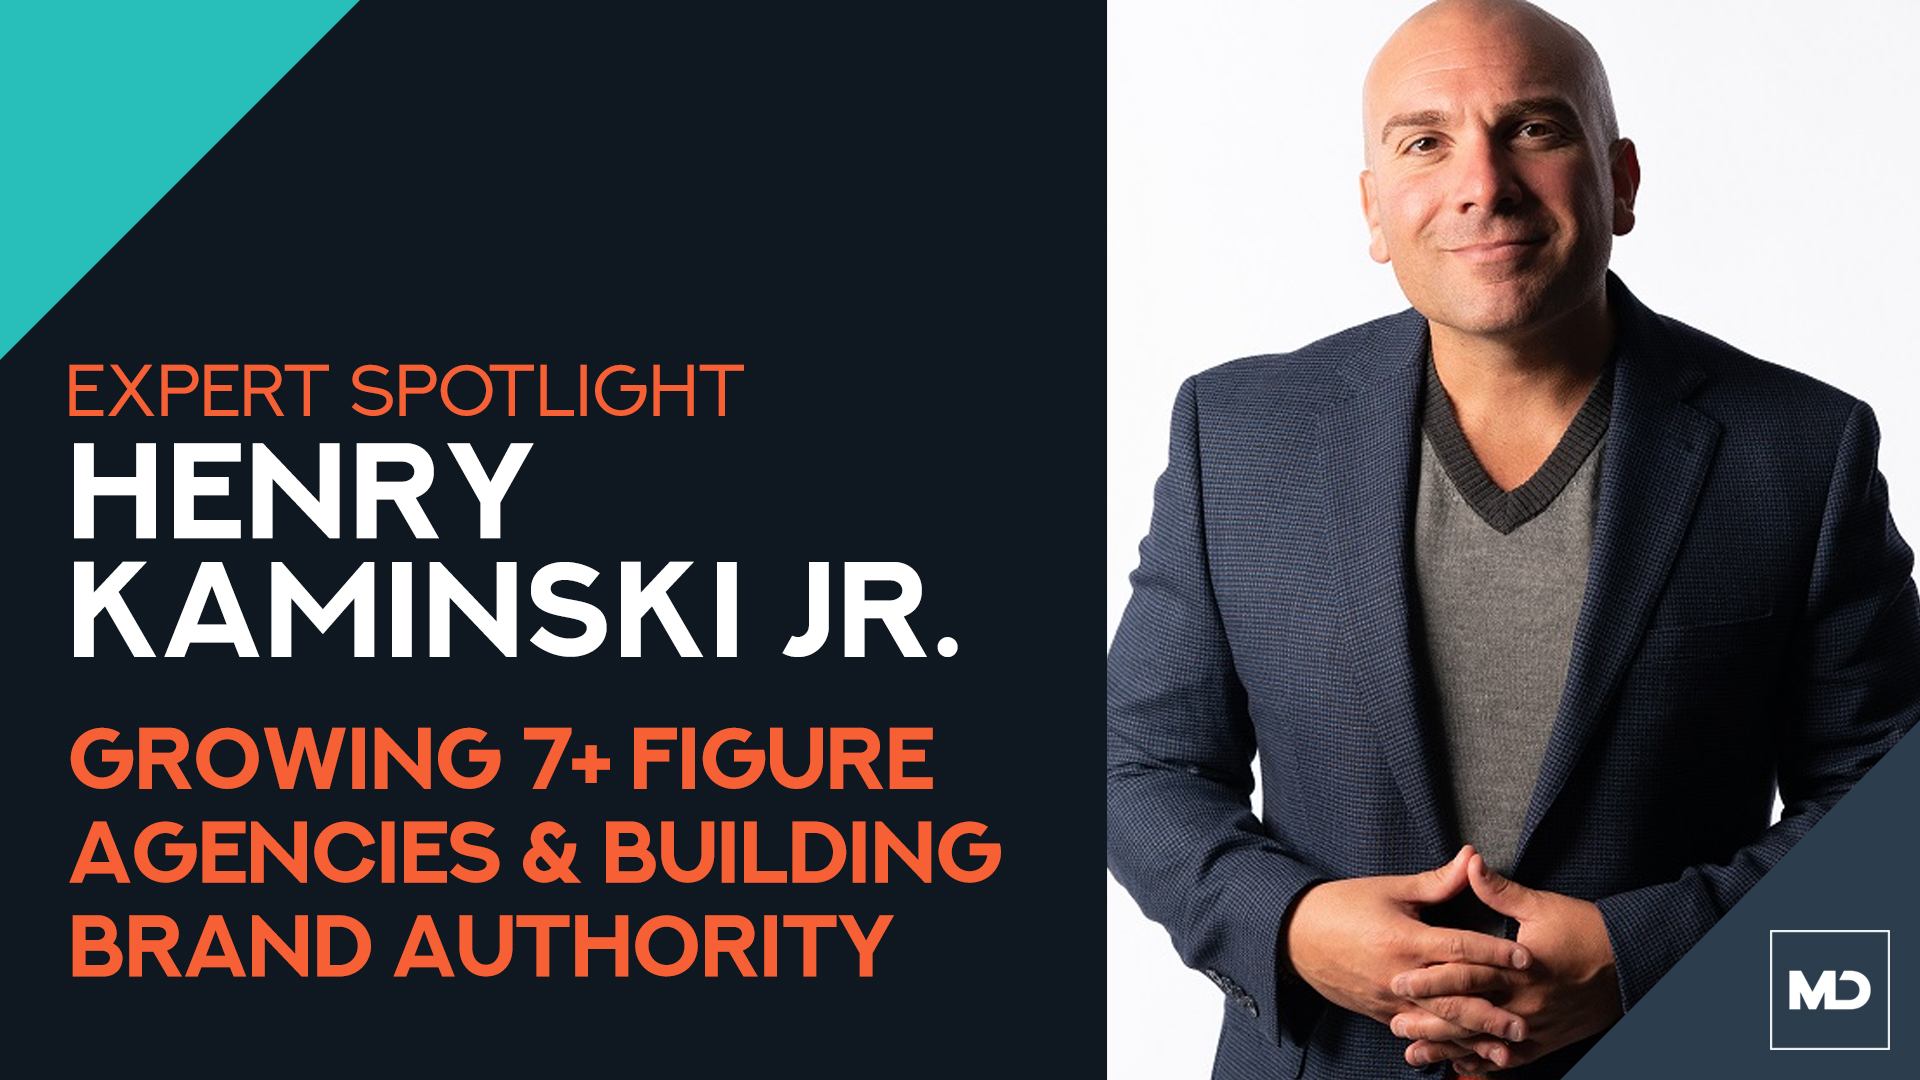 Expert Spotlight with Henry Kaminski Jr.